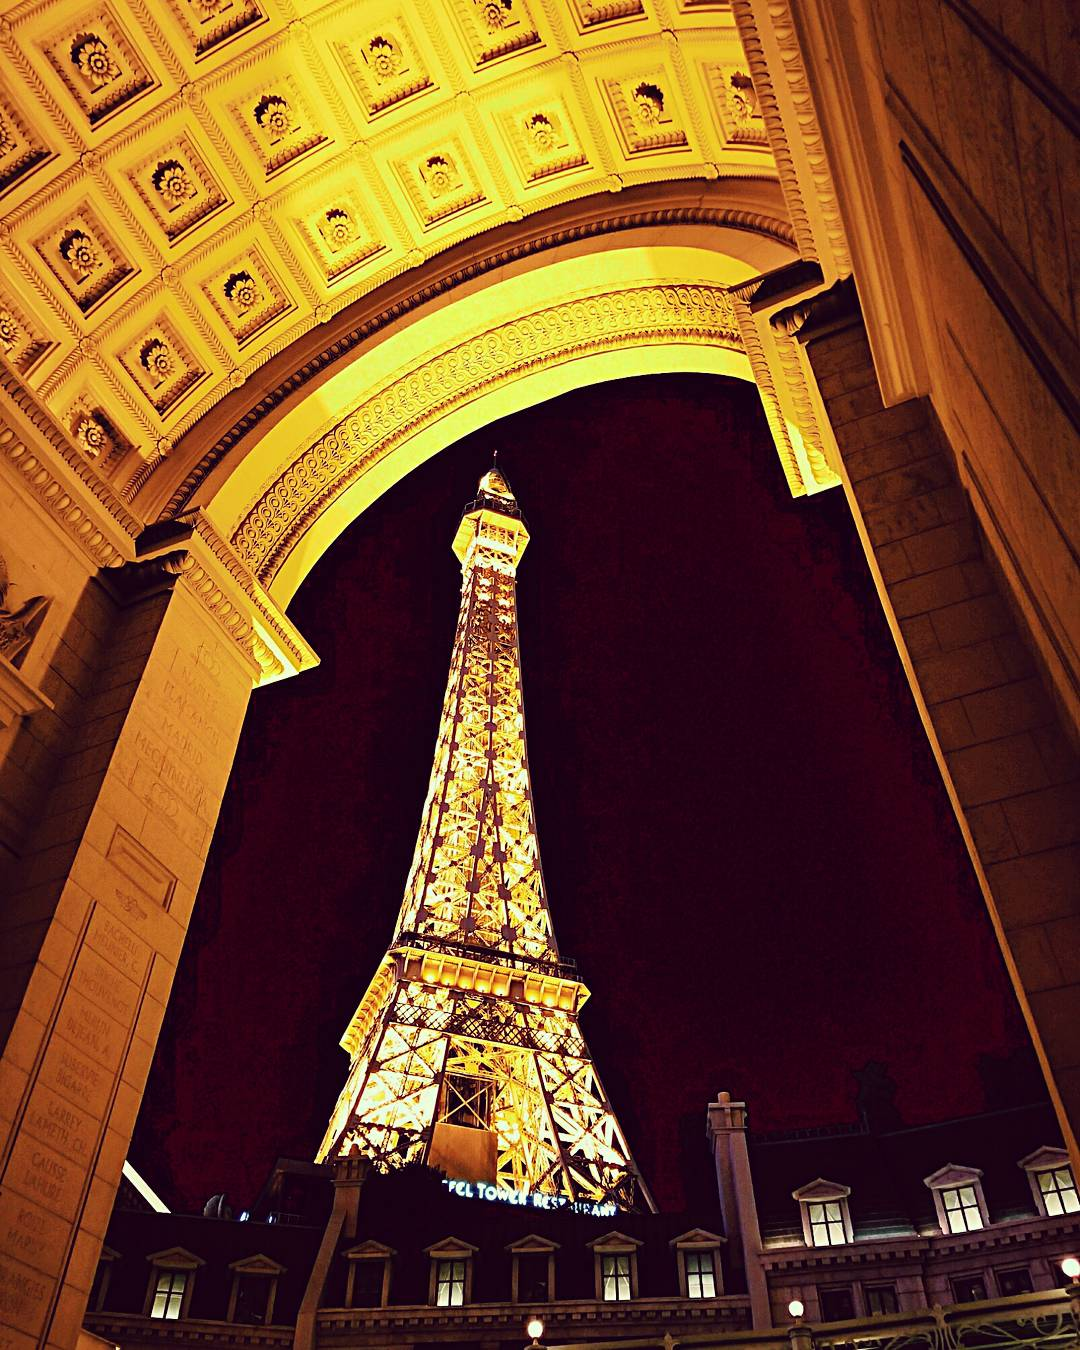 A shot of the Eiffel Tower replica in Las Vegas, NV